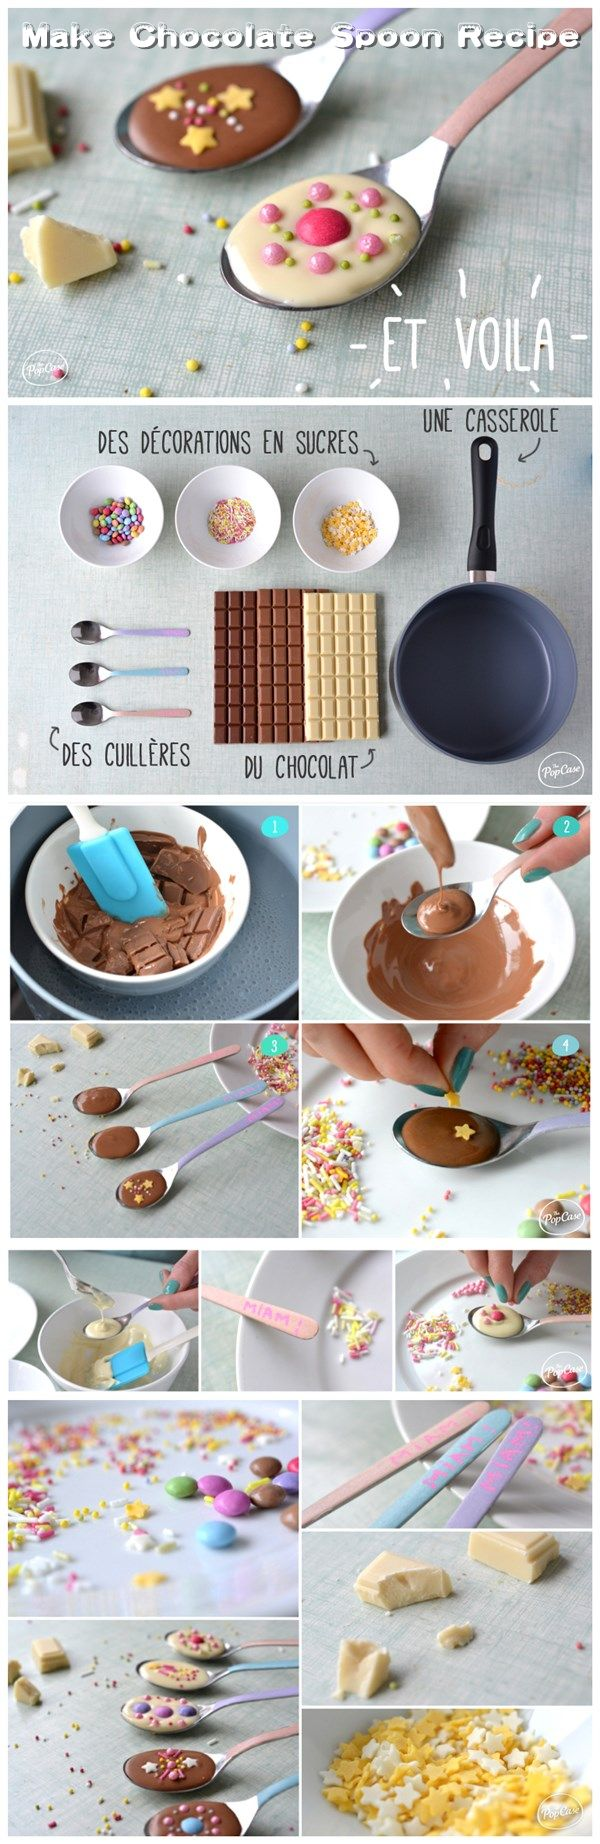 how to make cooking chocolate